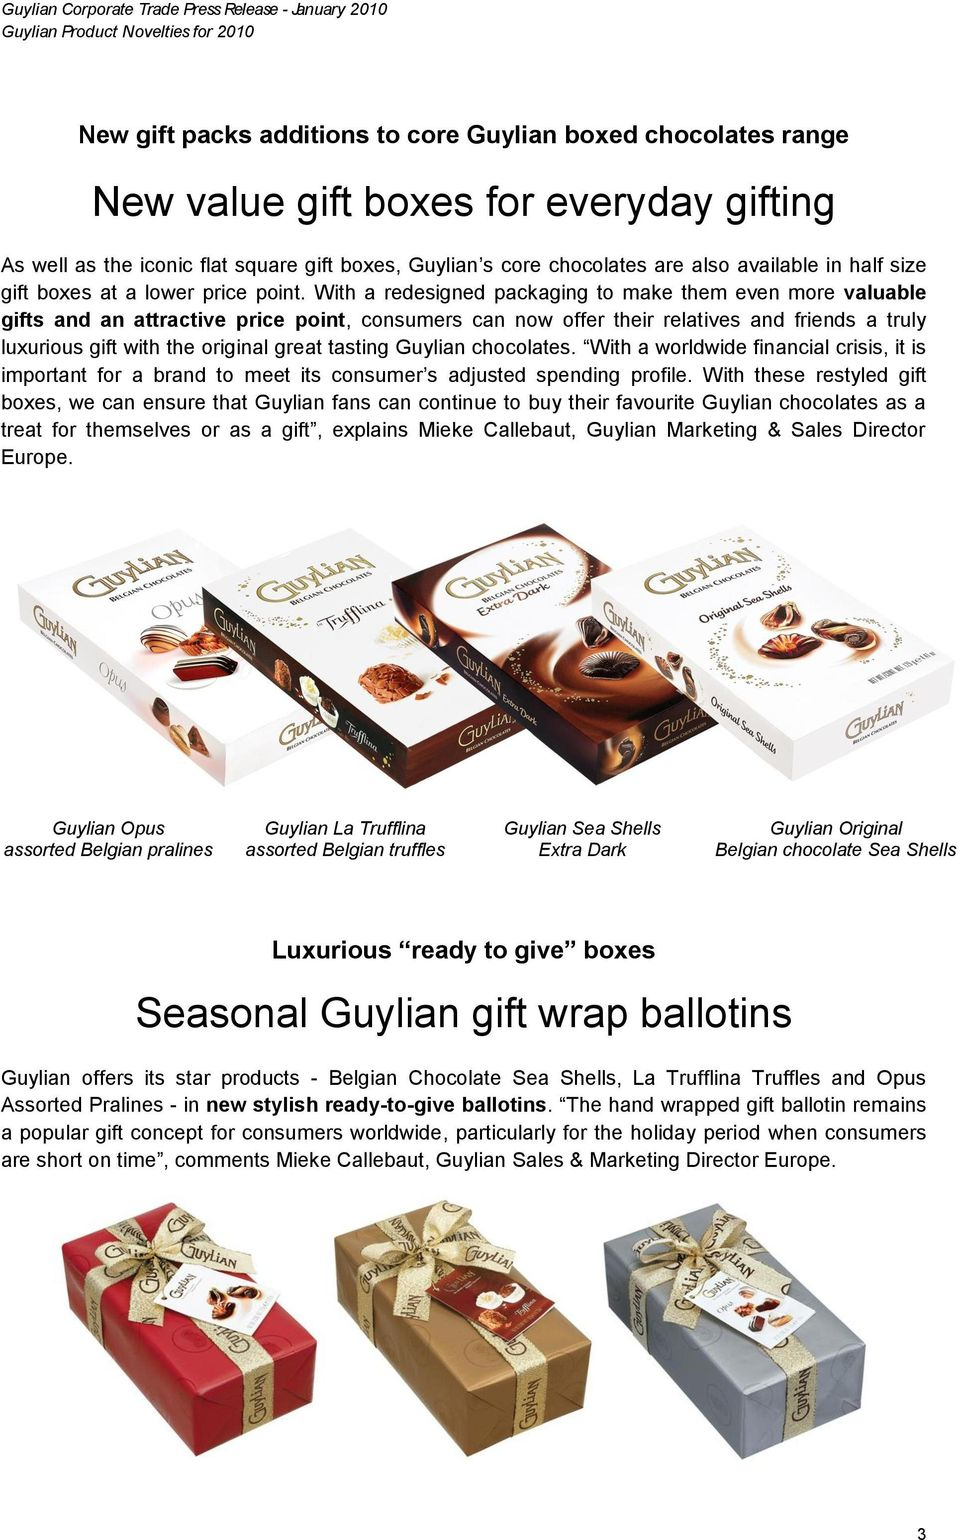 With a redesigned packaging to make them even more valuable gifts and an attractive price point, consumers can now offer their relatives and friends a truly luxurious gift with the original great